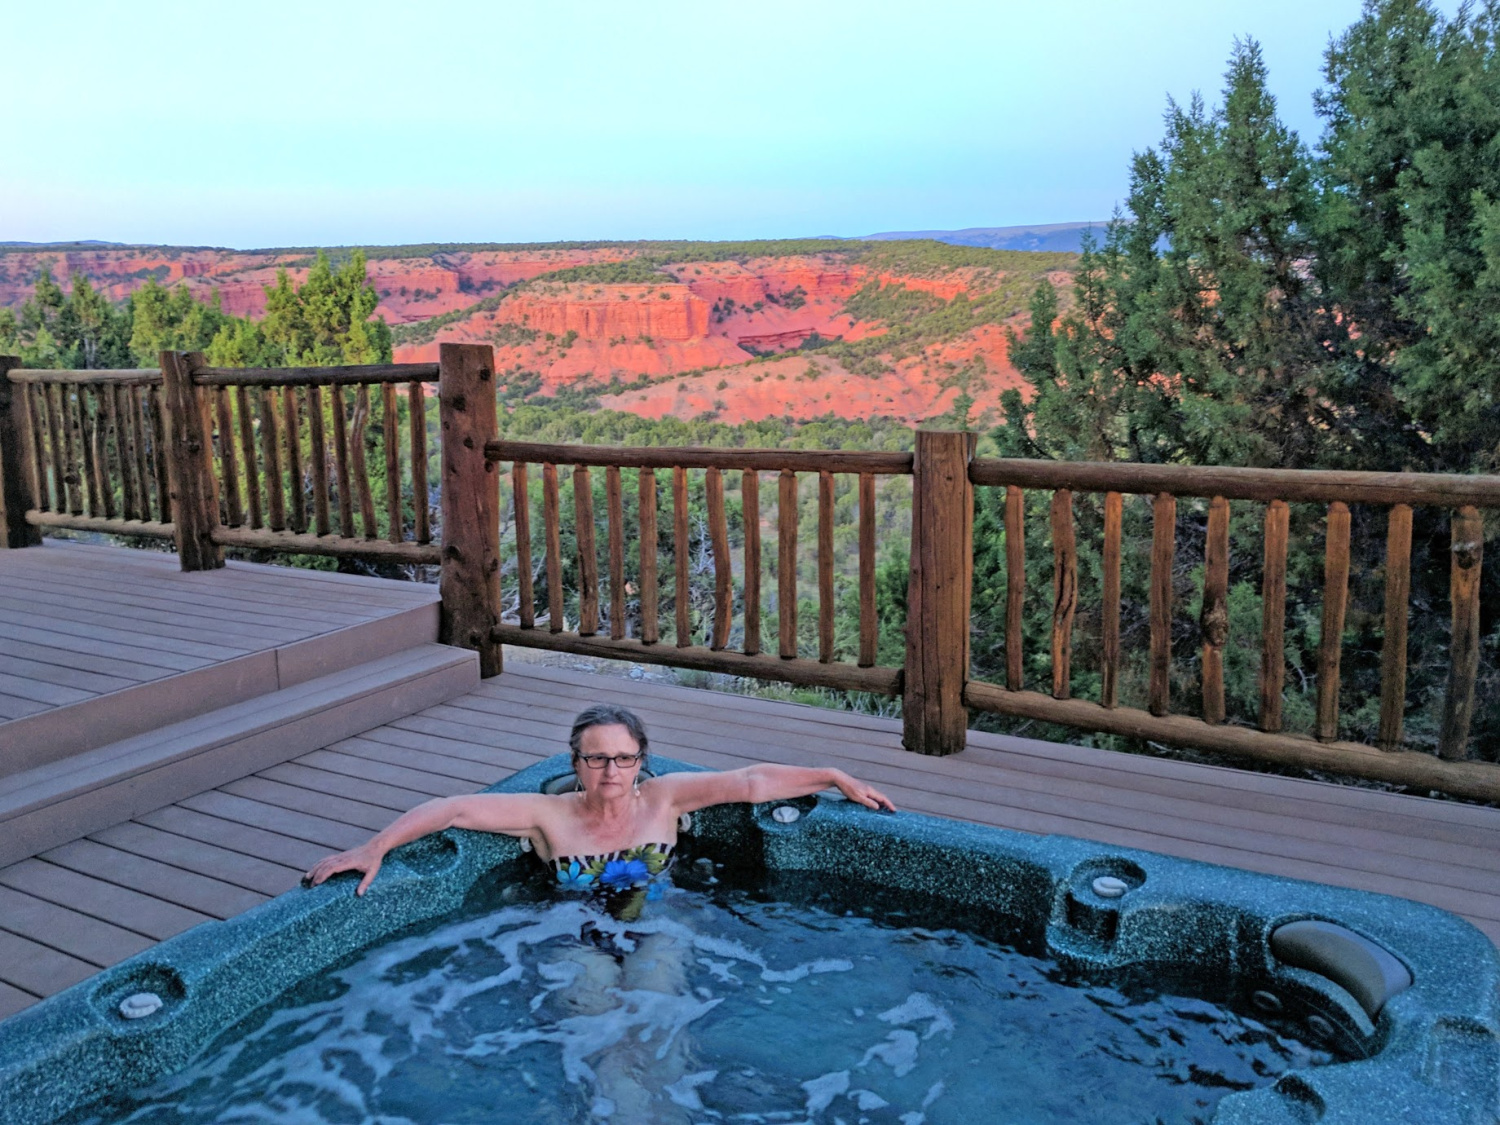 Soaking in a hot tub at the end of the day during dude ranch vacation at Red Reflet.